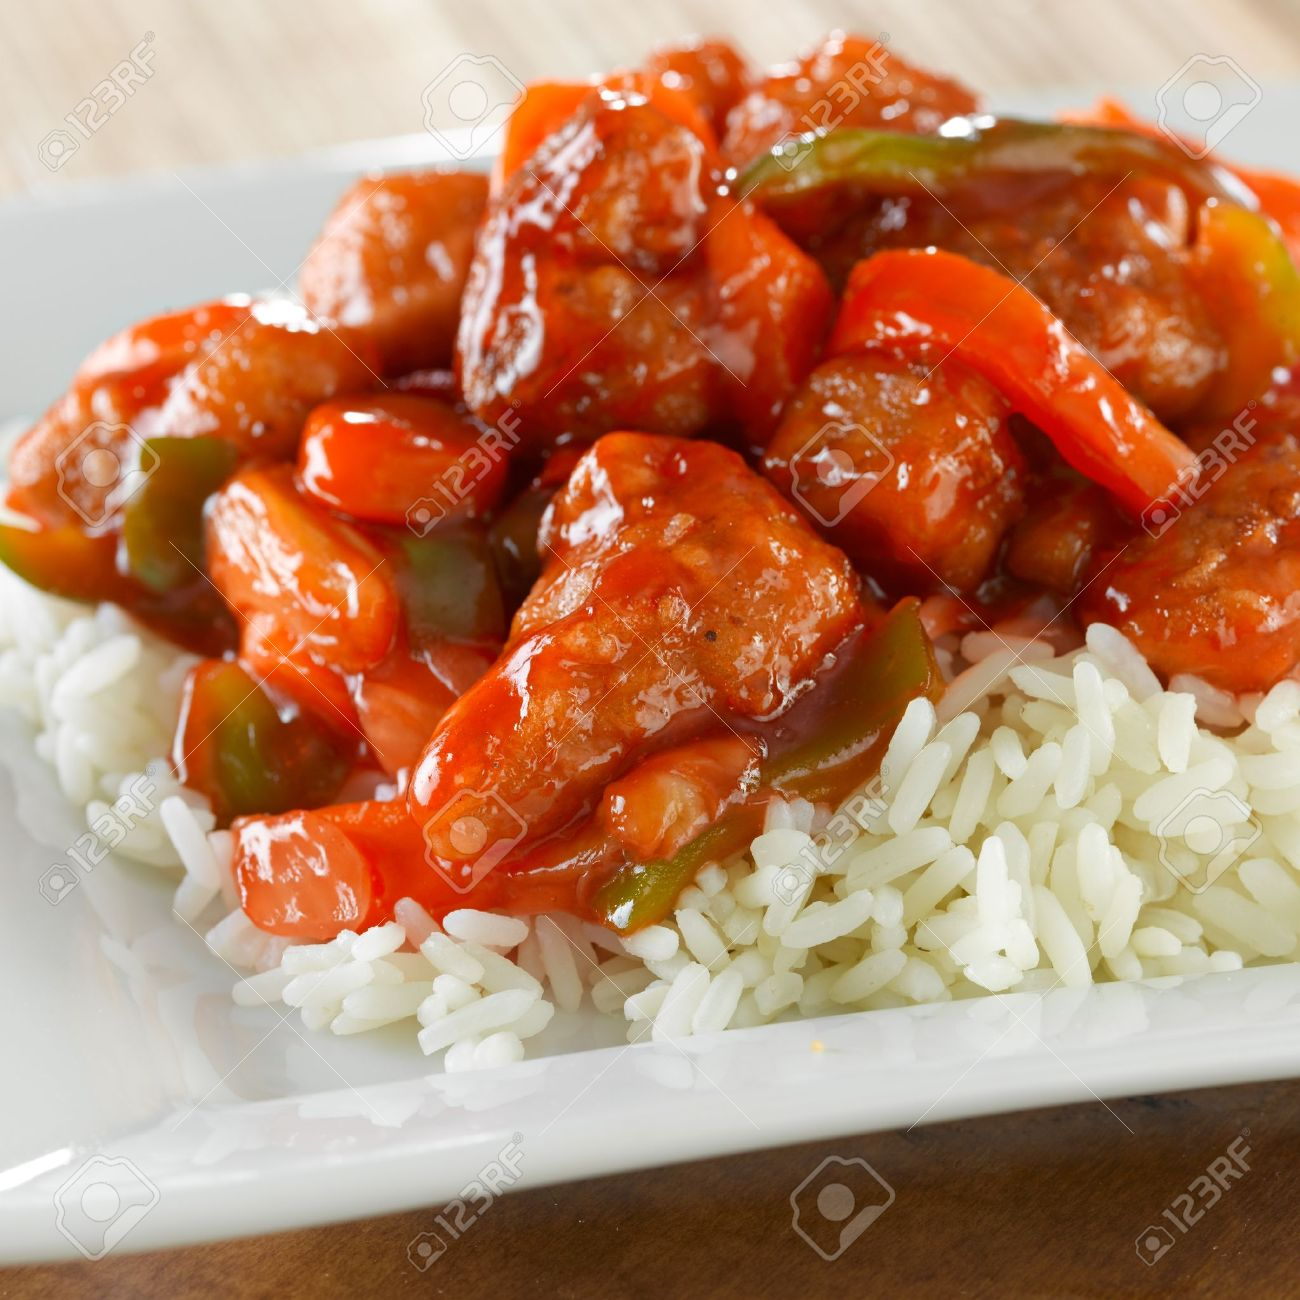 Sweet And Sour Pork On Rice Stock Photo Picture And Royalty Free Image Image 12925179